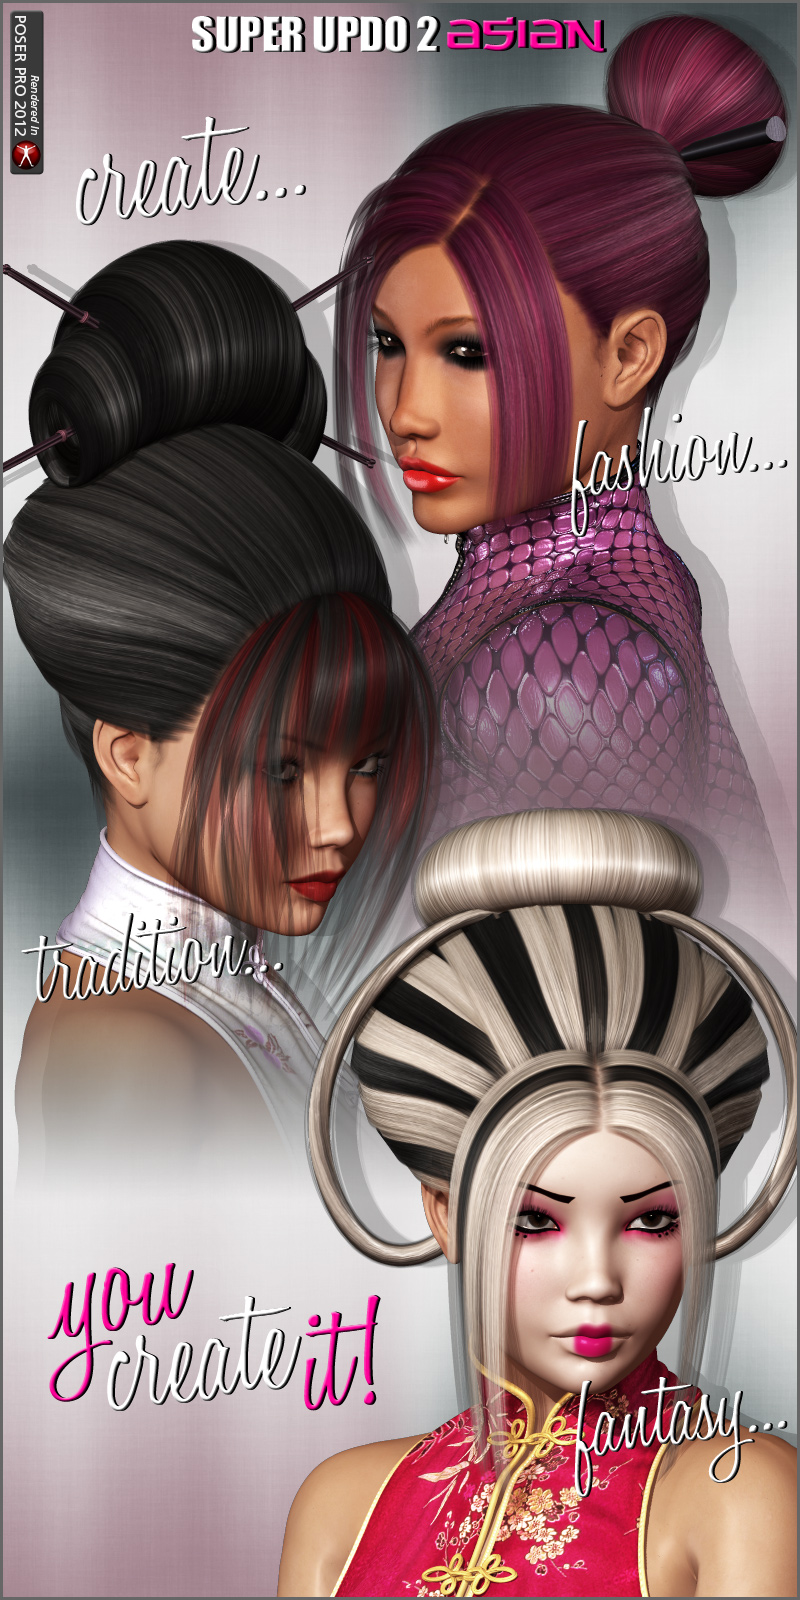 Super Updo 2 - Asian by outoftouch